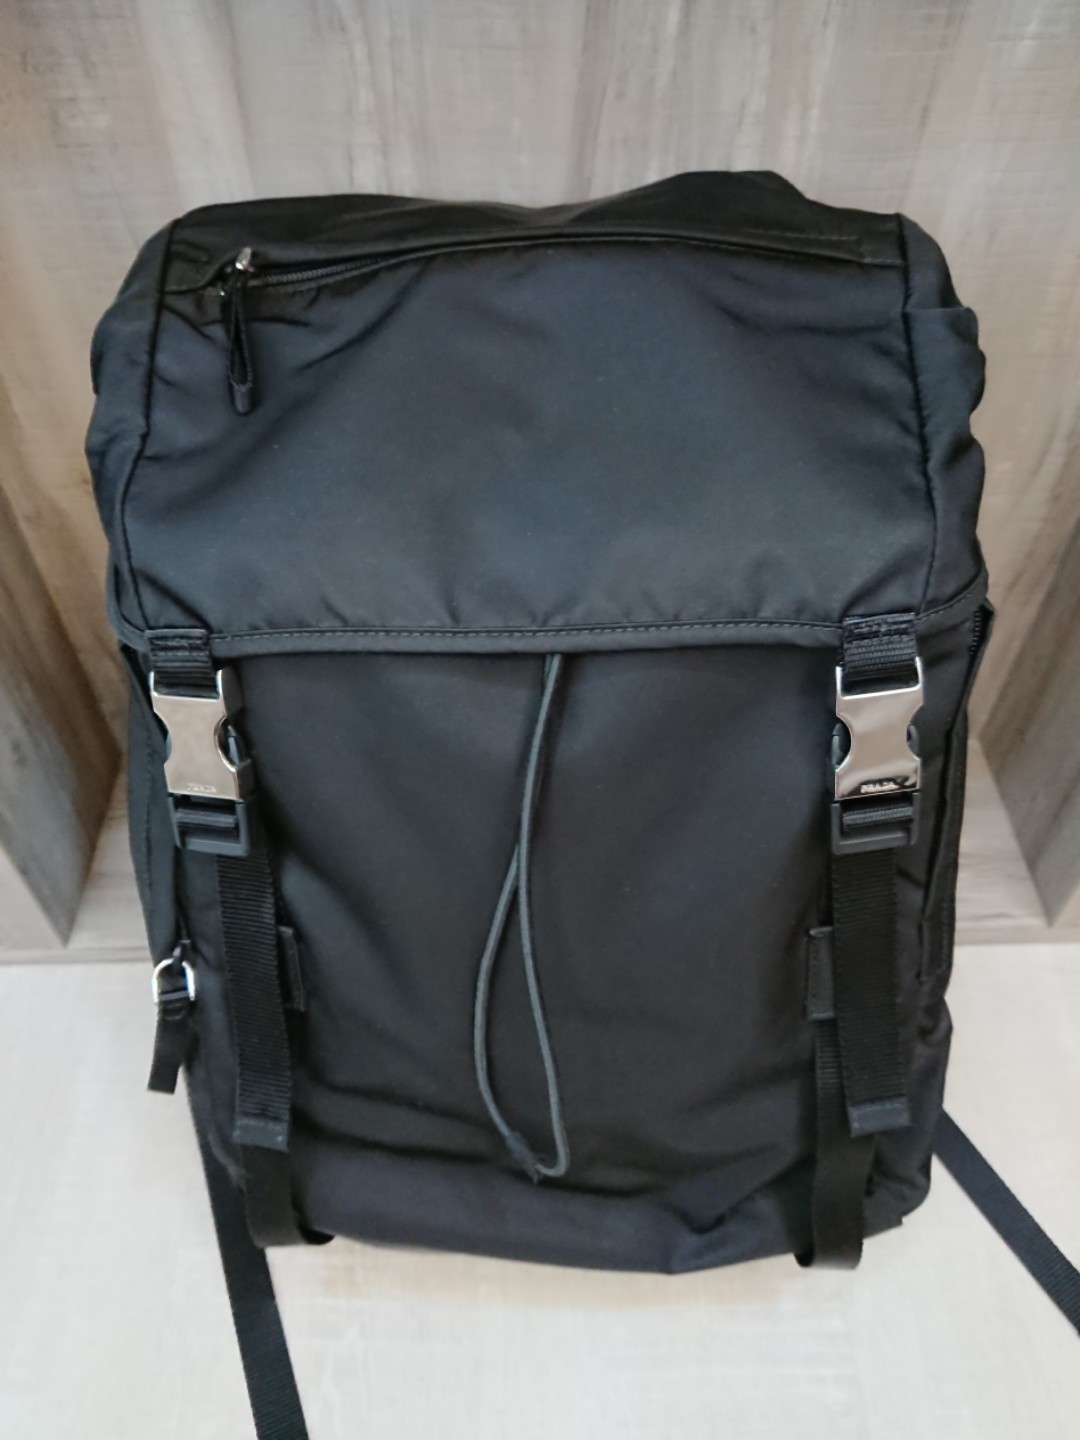 5ac5c1140684 ... low price bn prada backpack haversack 2vz062 tessuto montag nero luxury  bags wallets backpacks on carousell